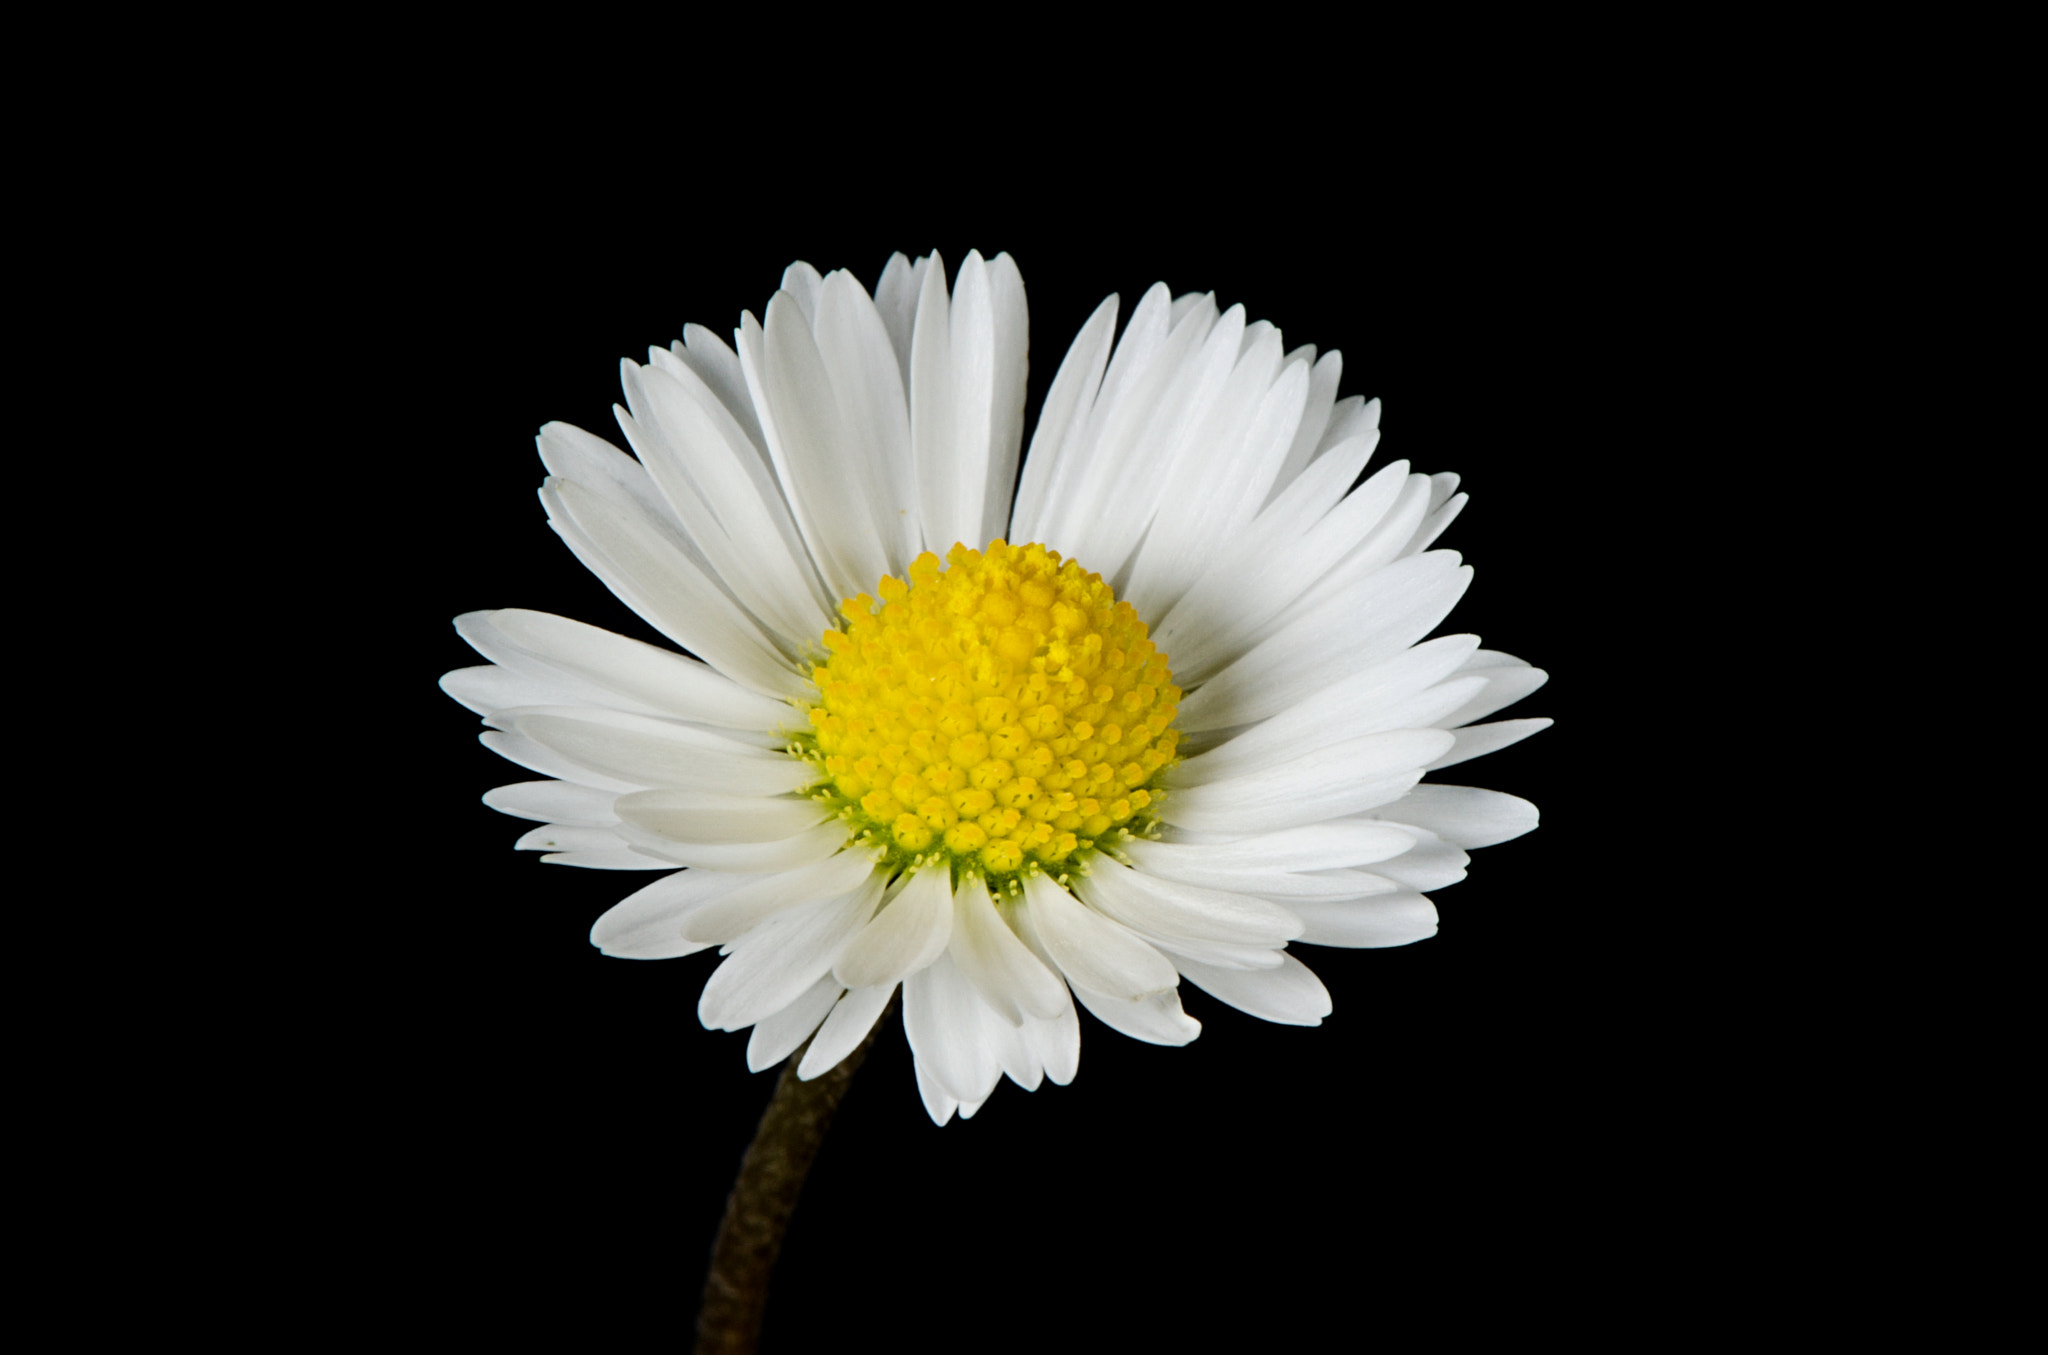 Photograph Little white flower 2 by Wayne Tan on 500px